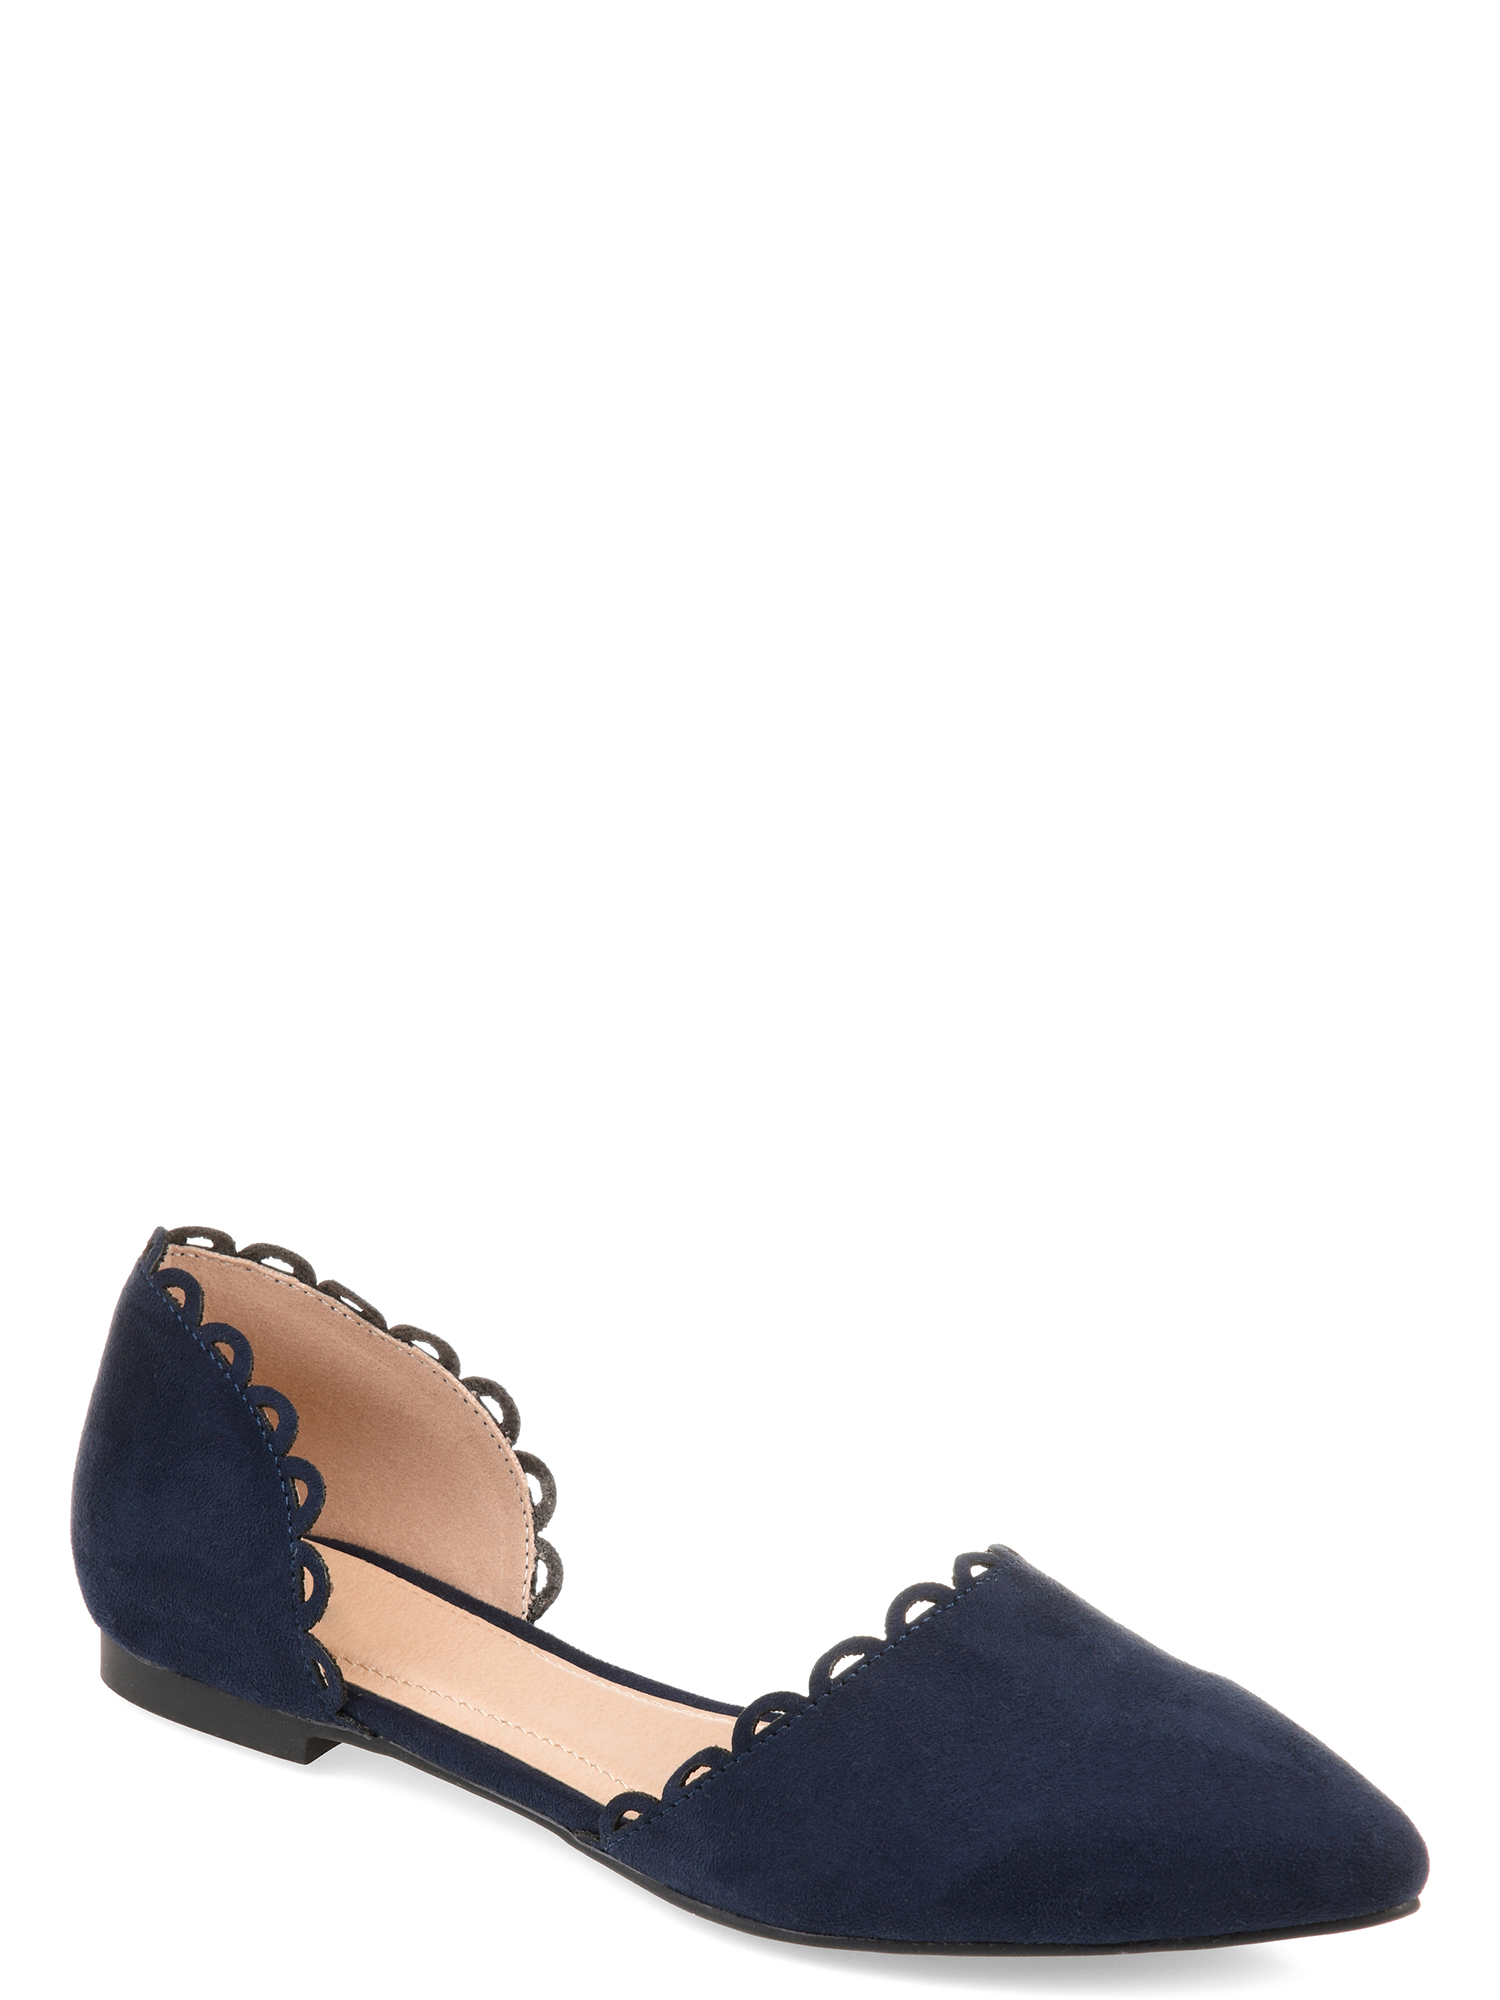 Womens Scalloped Flat